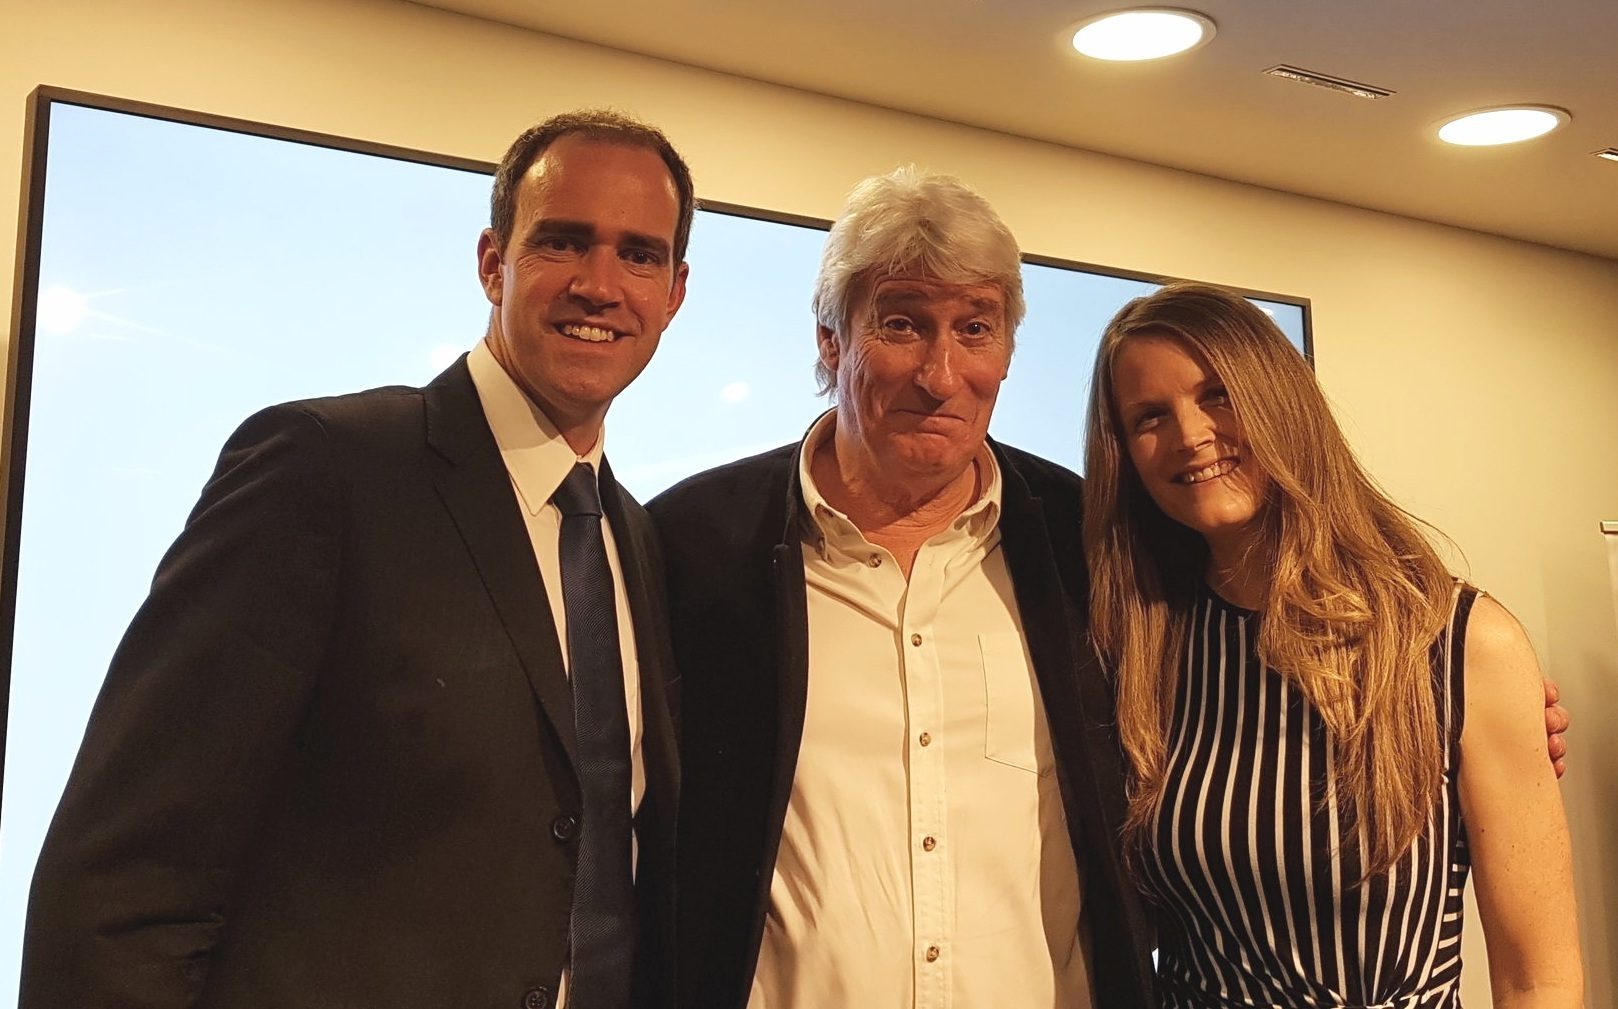 James and Kate with broadcaster, journalist and author Jeremy Paxman, following the expert panel debate.